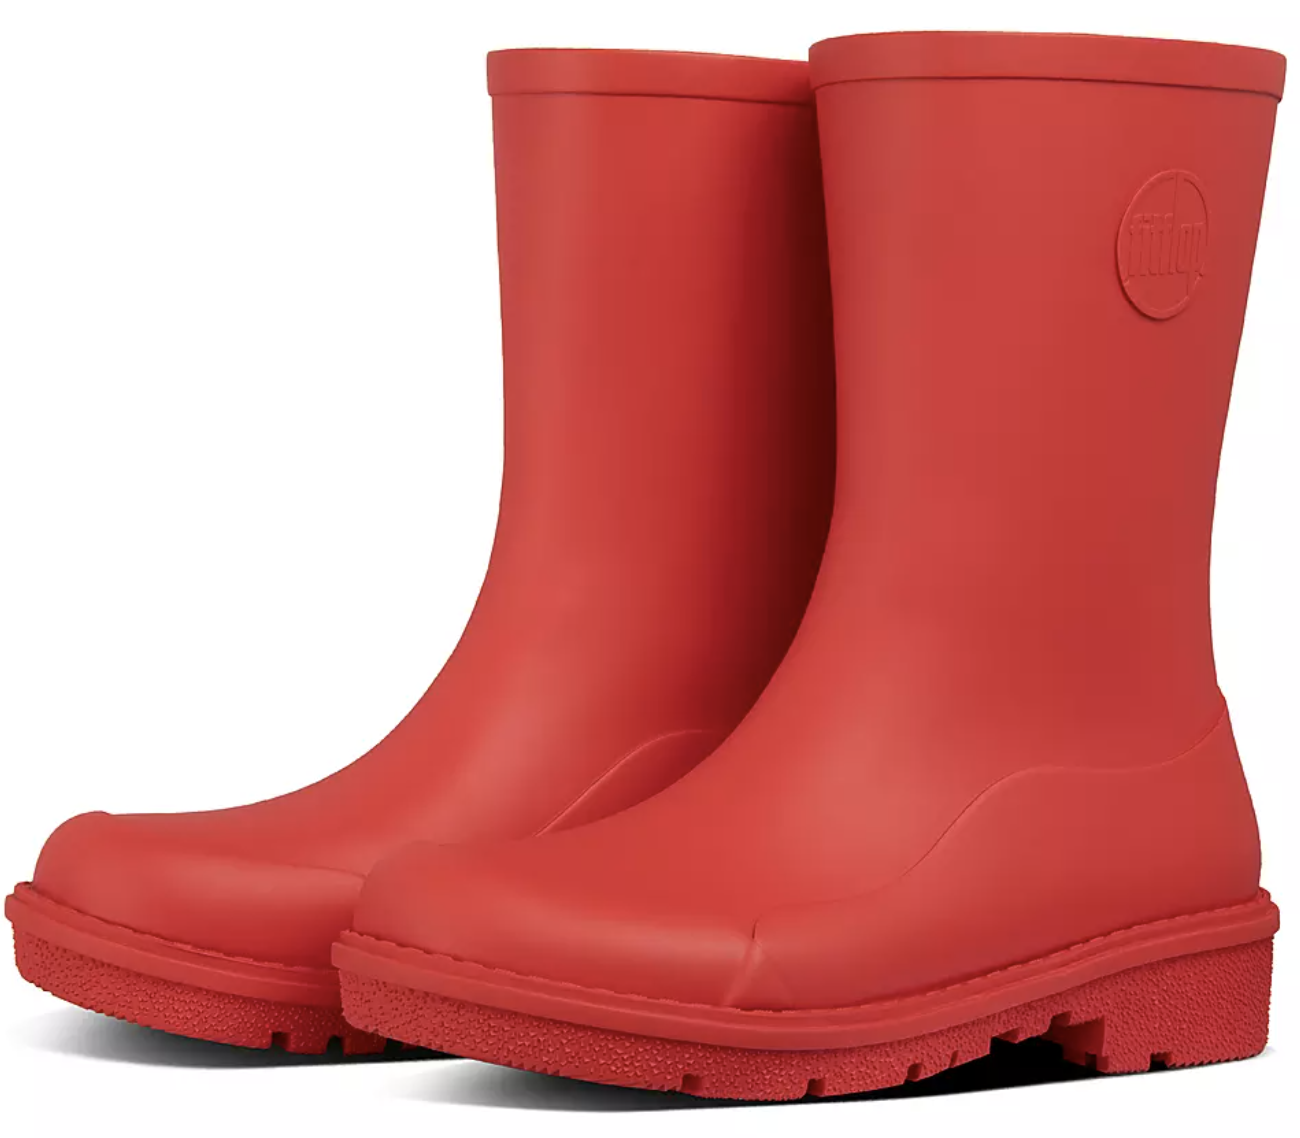 The rain boots in red